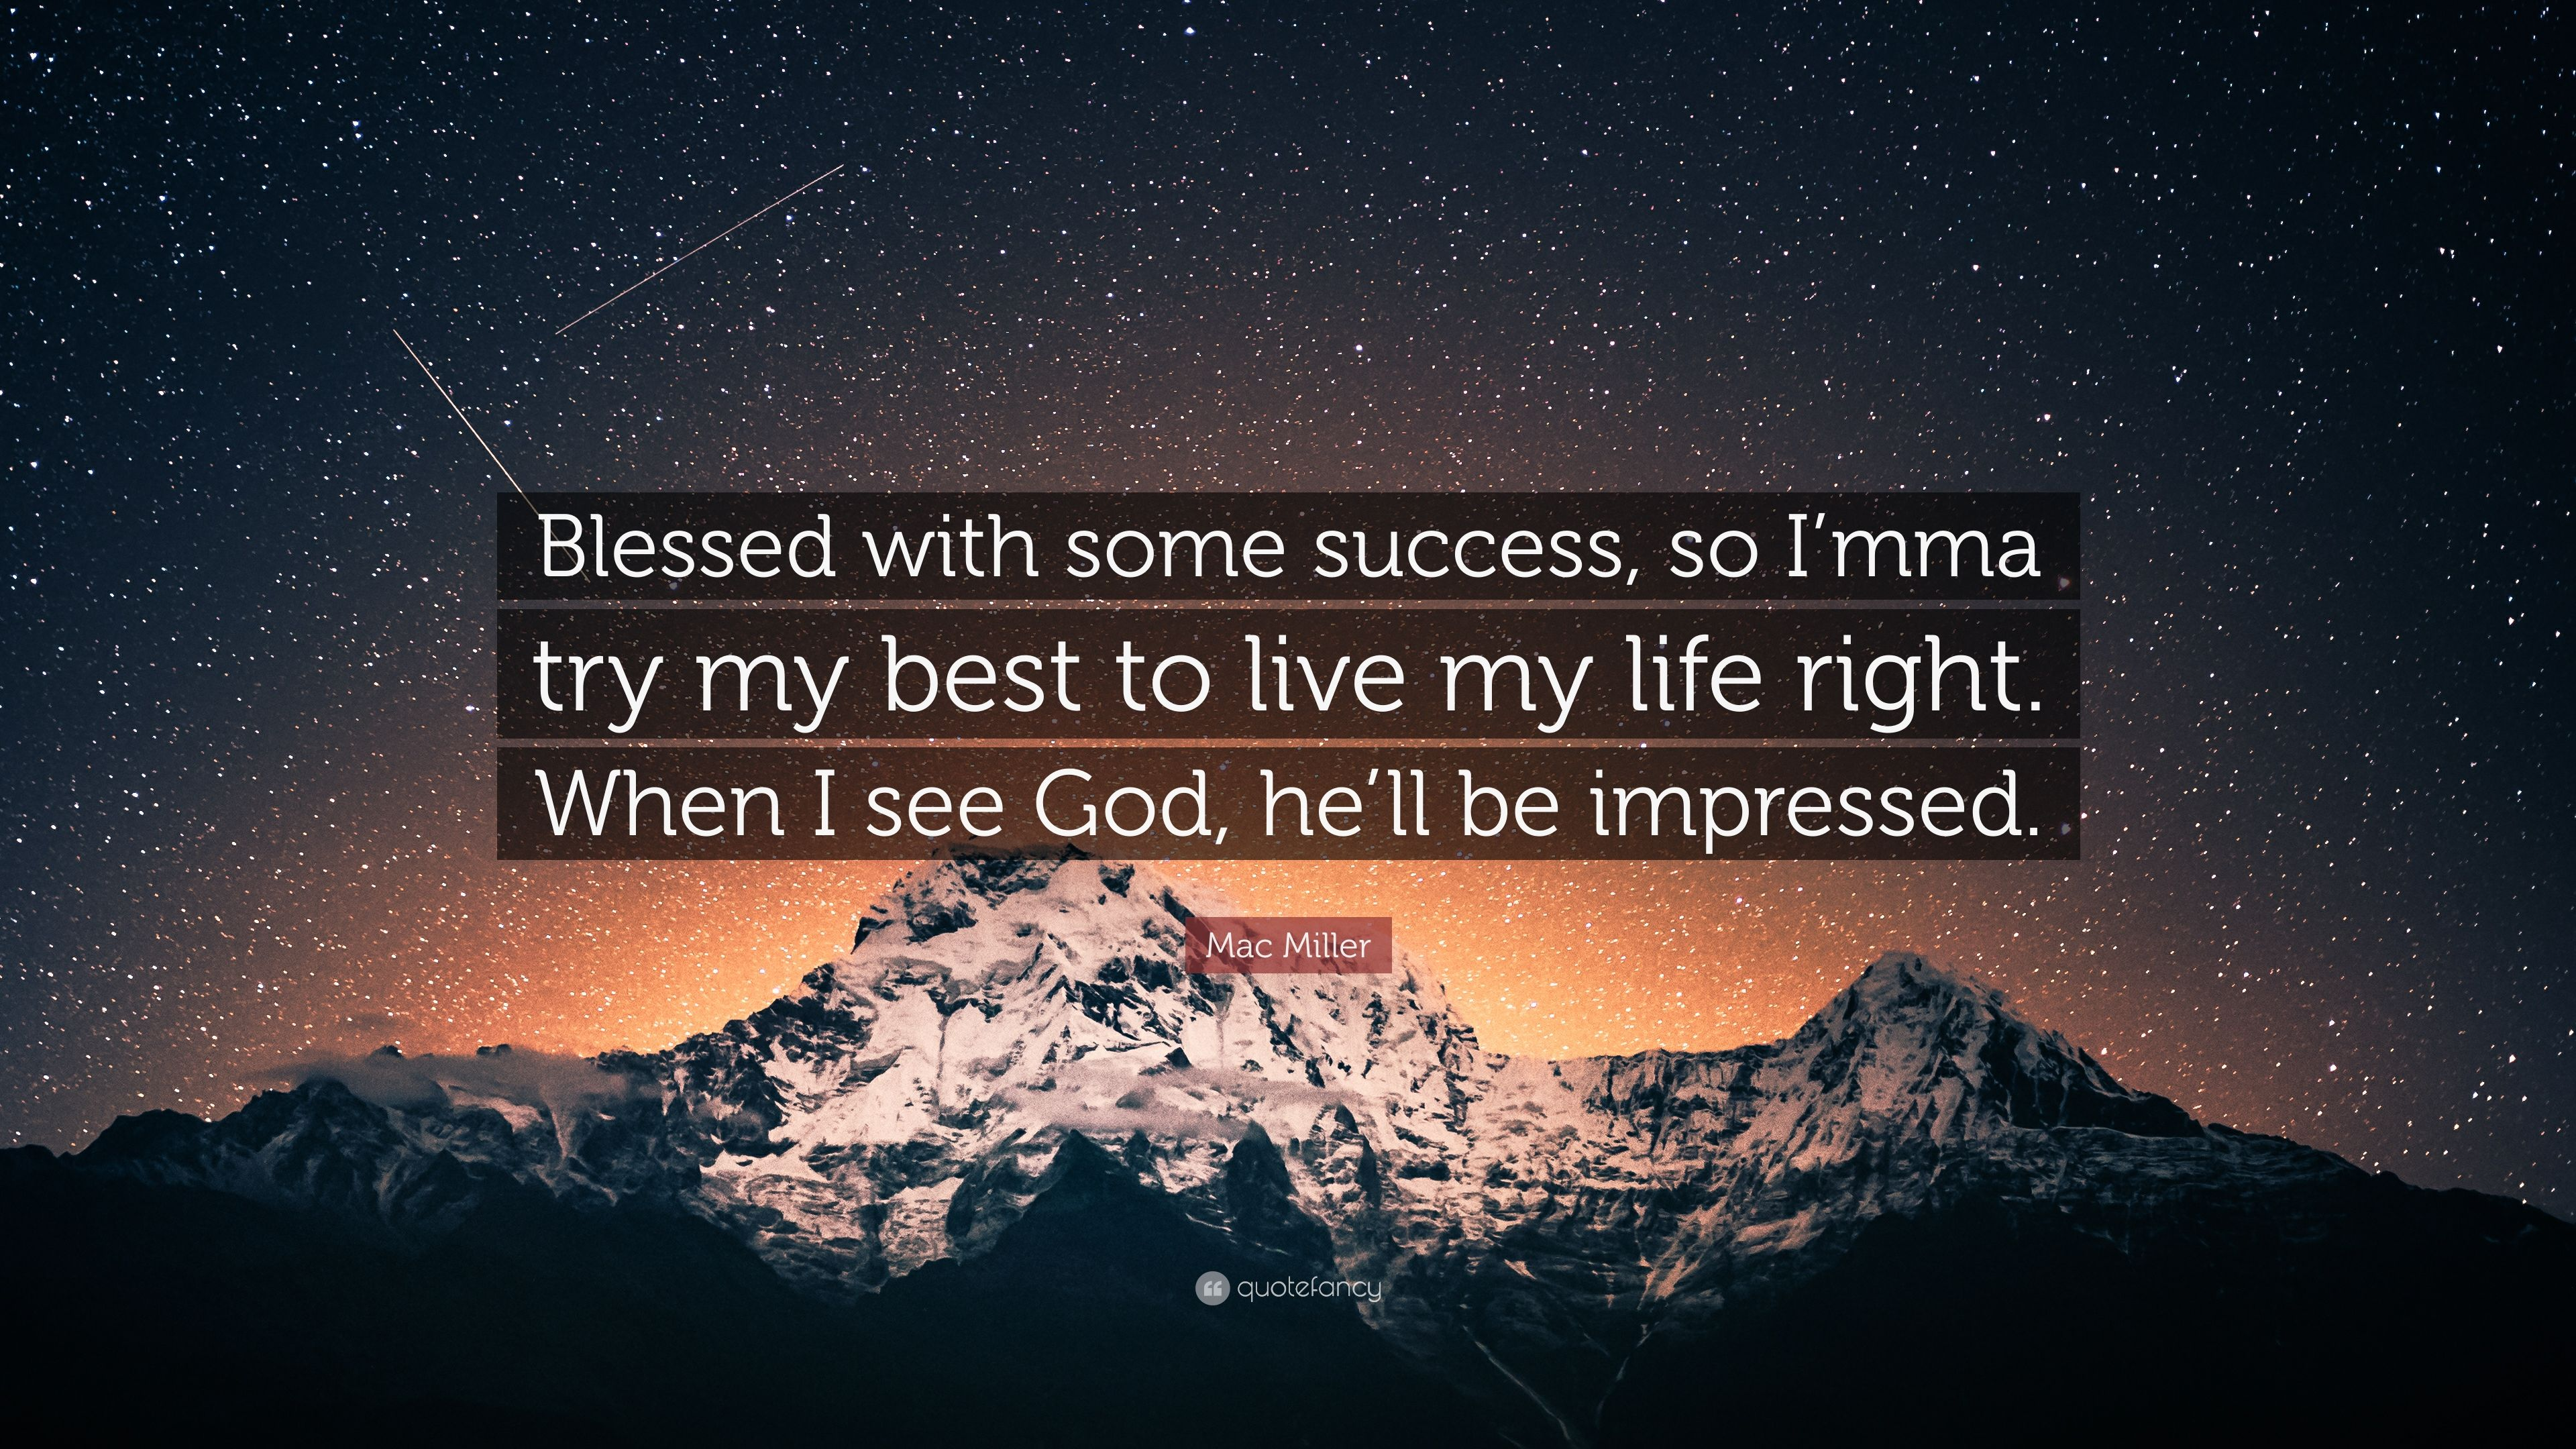 Mac Miller Quote Blessed With Some Success So I Mma Try My Best To Live My Life Right When I See God He Ll Be Impressed 7 Wallpapers Quotefancy